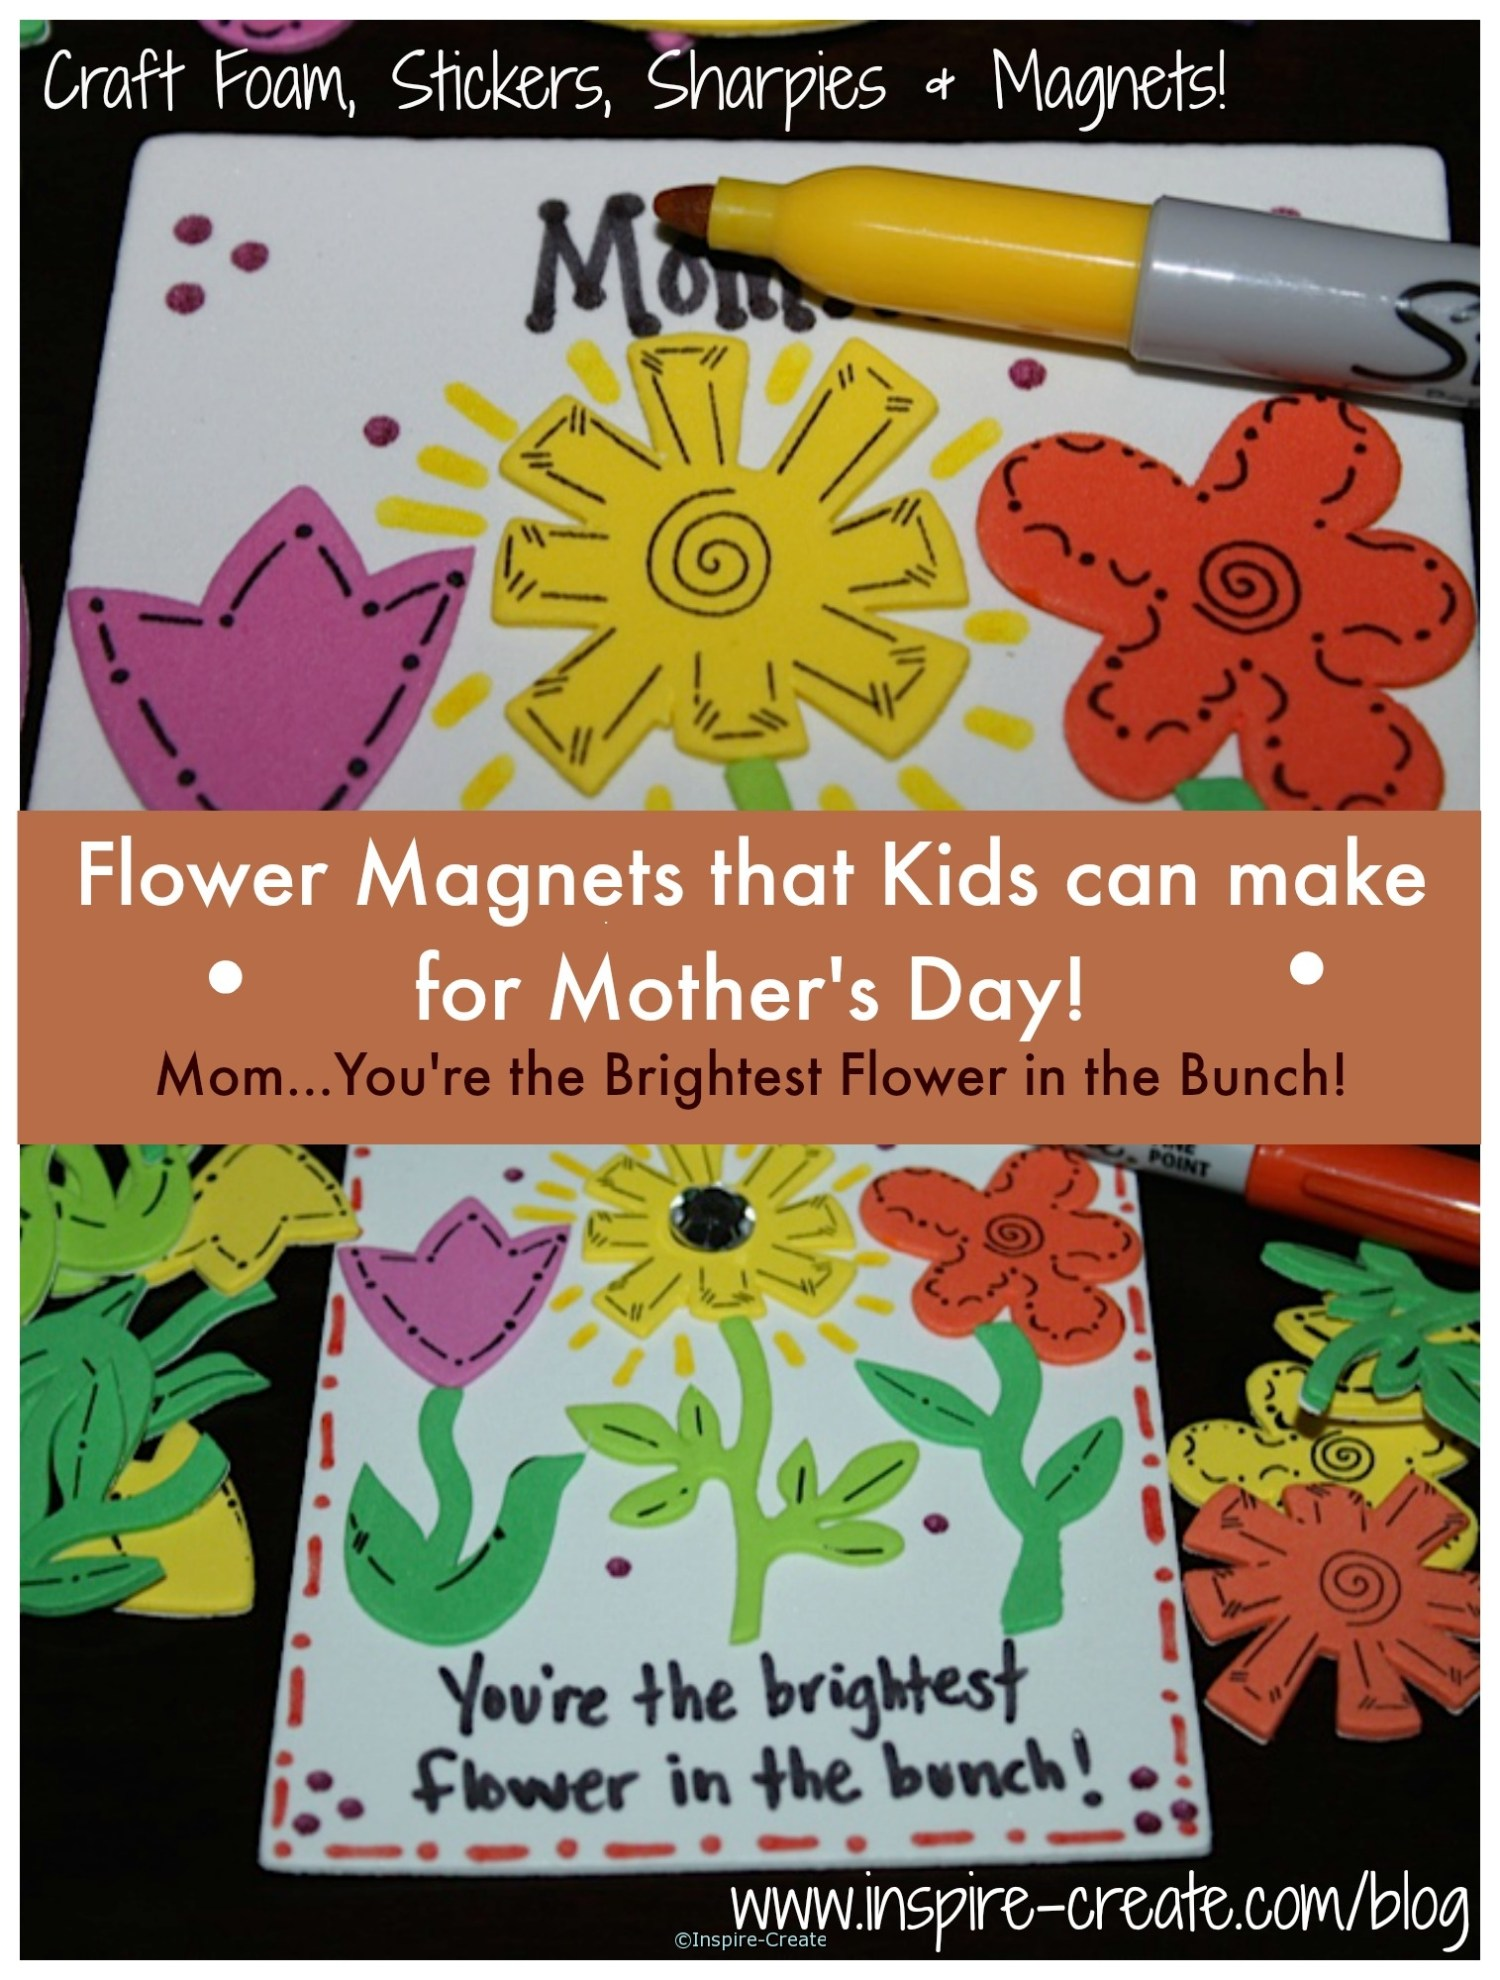 Mother's Day Flower Magnet that Kids can make!